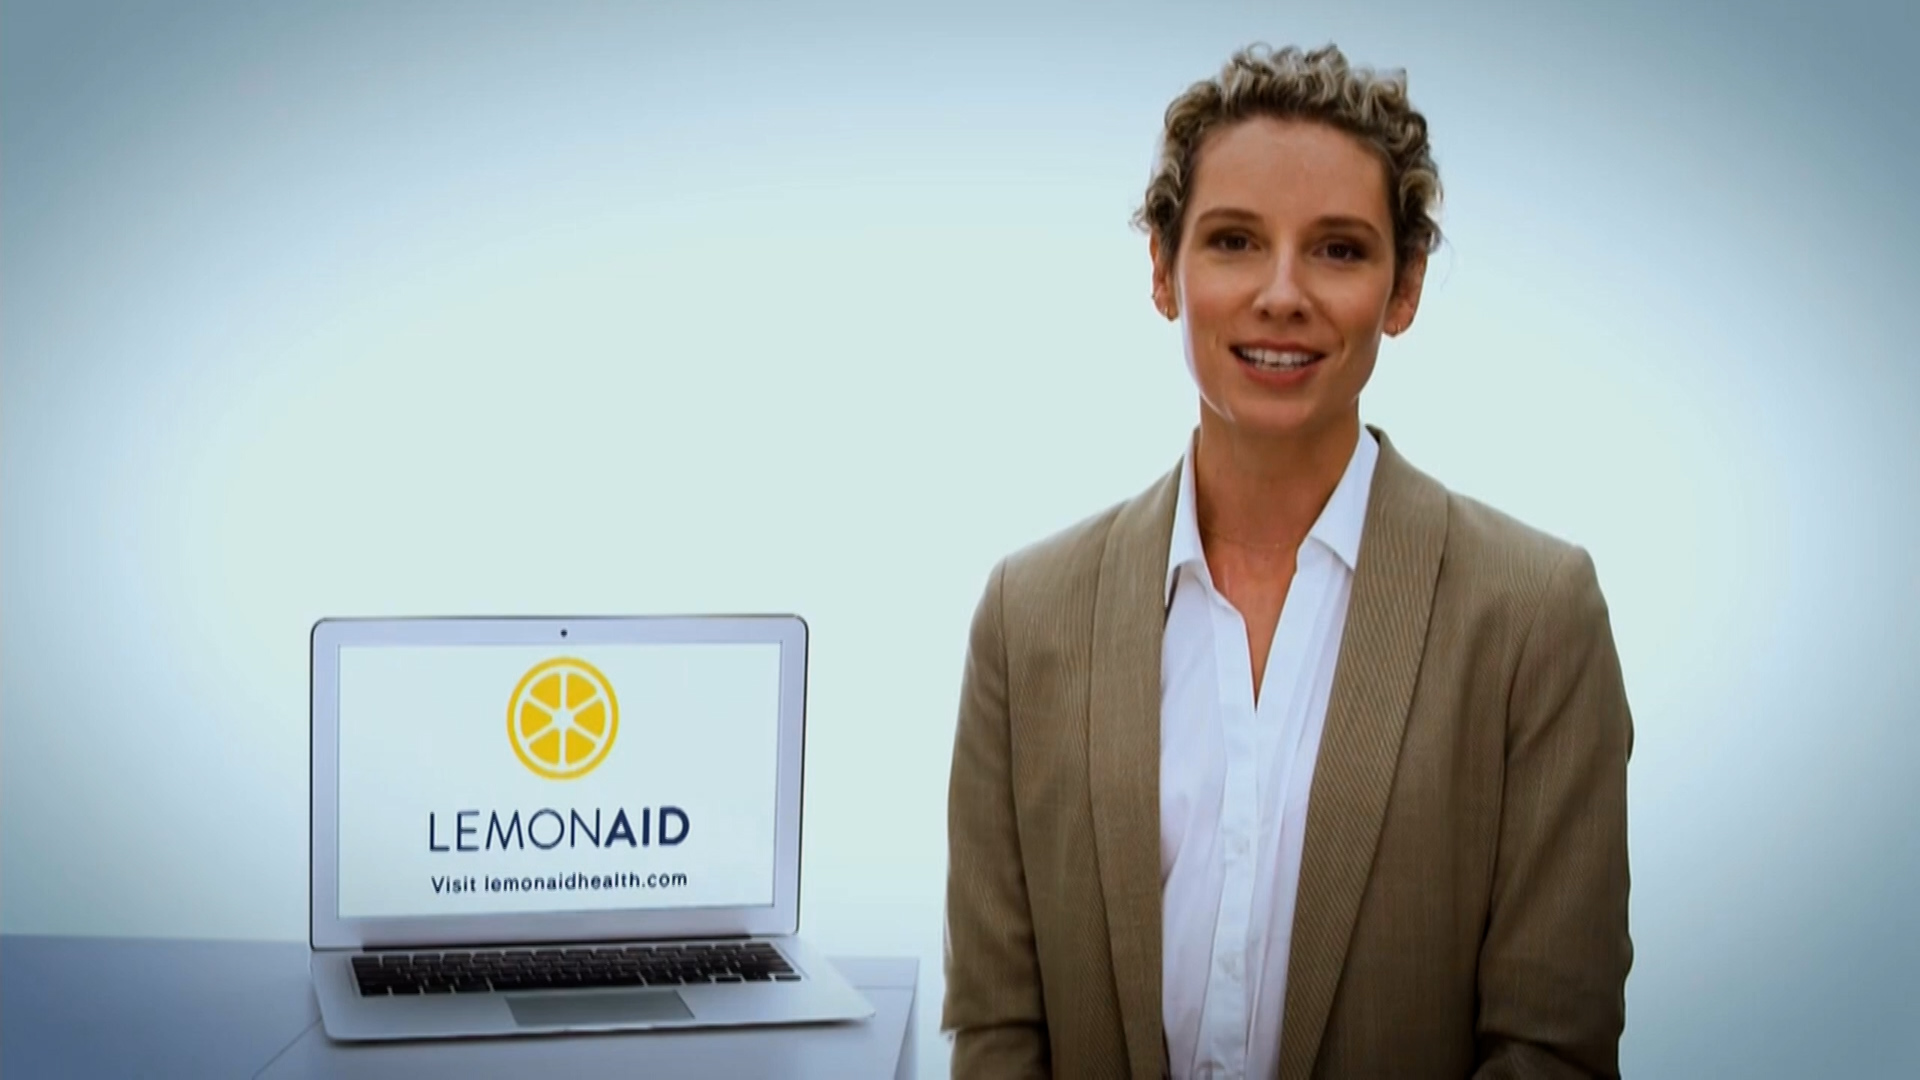 Lemonaid---kw---Healthcare_category---MSNBC_-_March_9--2021---dtc---USA---English---TV_commercial---15_seconds.mp4